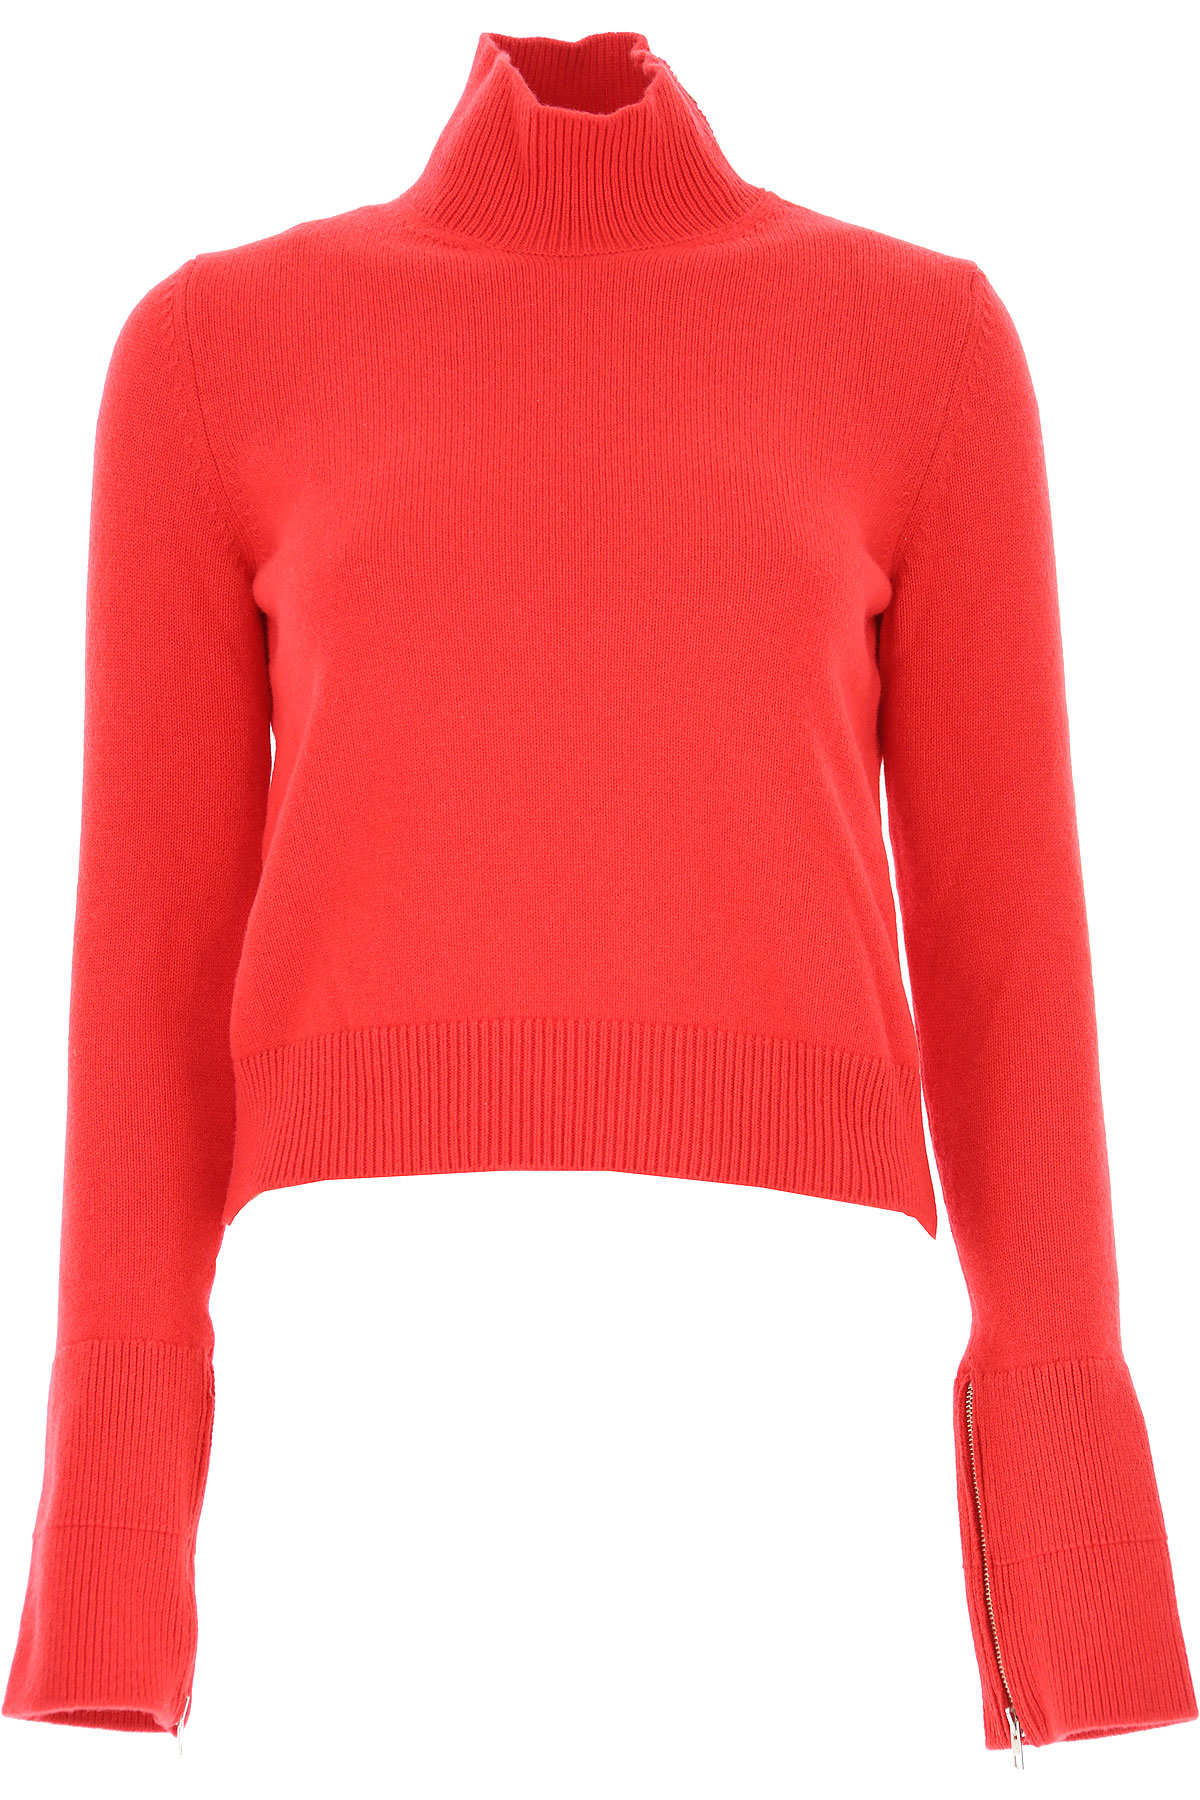 Image of MRZ Sweater for Women Jumper, Red, Wool, 2017, 4 6